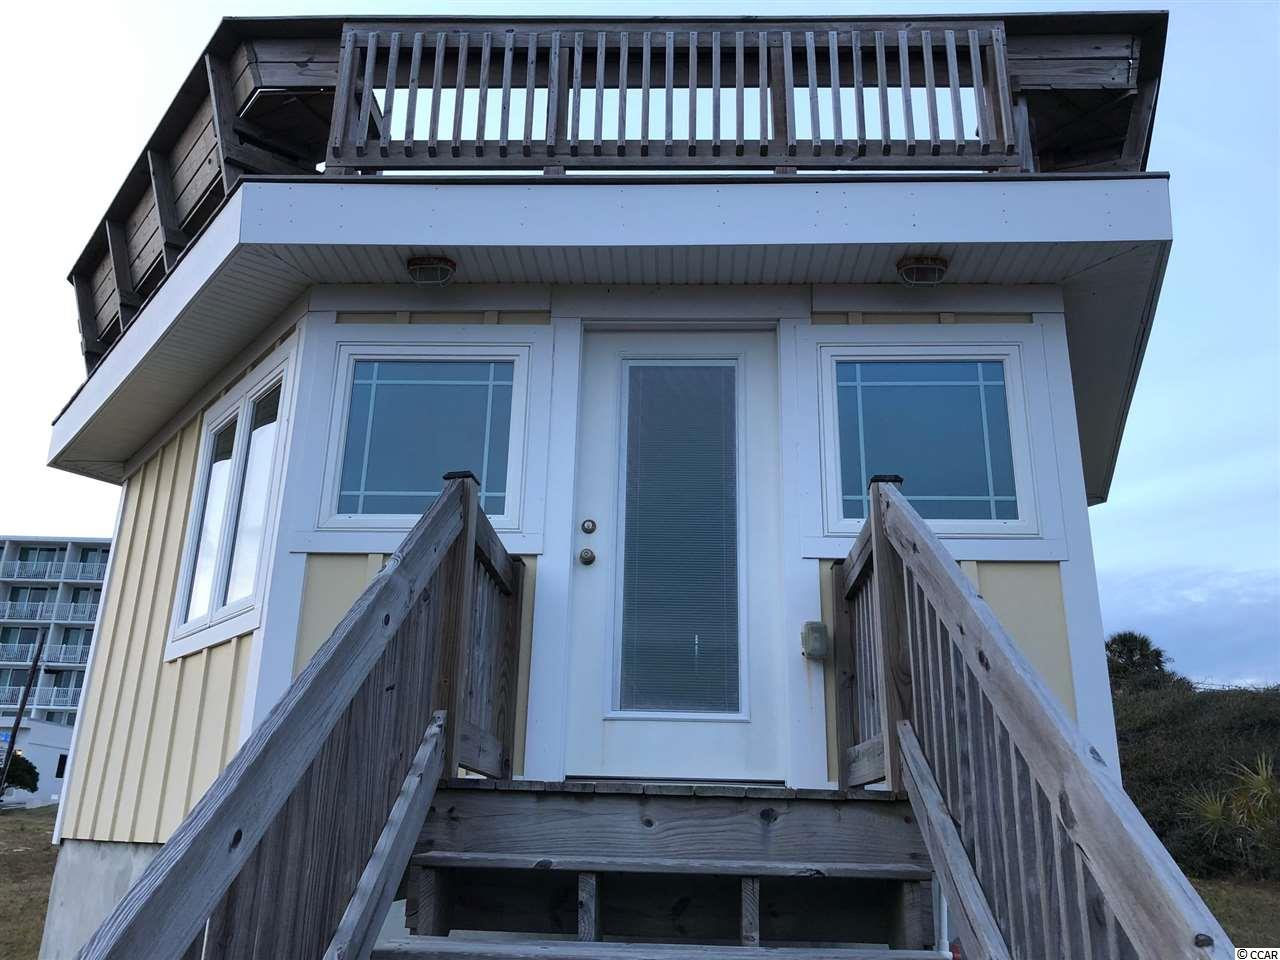 Own your very own piece of oceanfront paradise.  Rare opportunity to own one of the most unique types of real estate in Myrtle Beach.  This Cabana was completely remodeled in 2015 with all the best.  Heating and cooling, granite counter tops, gas range, and full bath.  This is the only Cabana with a roof top deck and the lot has a curb cut off Ocean Blvd.  It also has a basement (dry) for all beach toys!  This cabana is NOT a residence and cannot be lived in.  While it sits on one of the largest lots in the cabana section, the largest structure zoning will allow is 250SF.  It is for day use only (zoning says you cannot stay in a cabana overnight. However how late you can stay is well...) while allowing the owner parking and access to the beach in an area where there are no public beach accesses and no public parking. This means that when the rest of the beaches are packed in the high season you have your own private parking, beach access full cooking, bath and air conditioned escape along a beach with much less density.